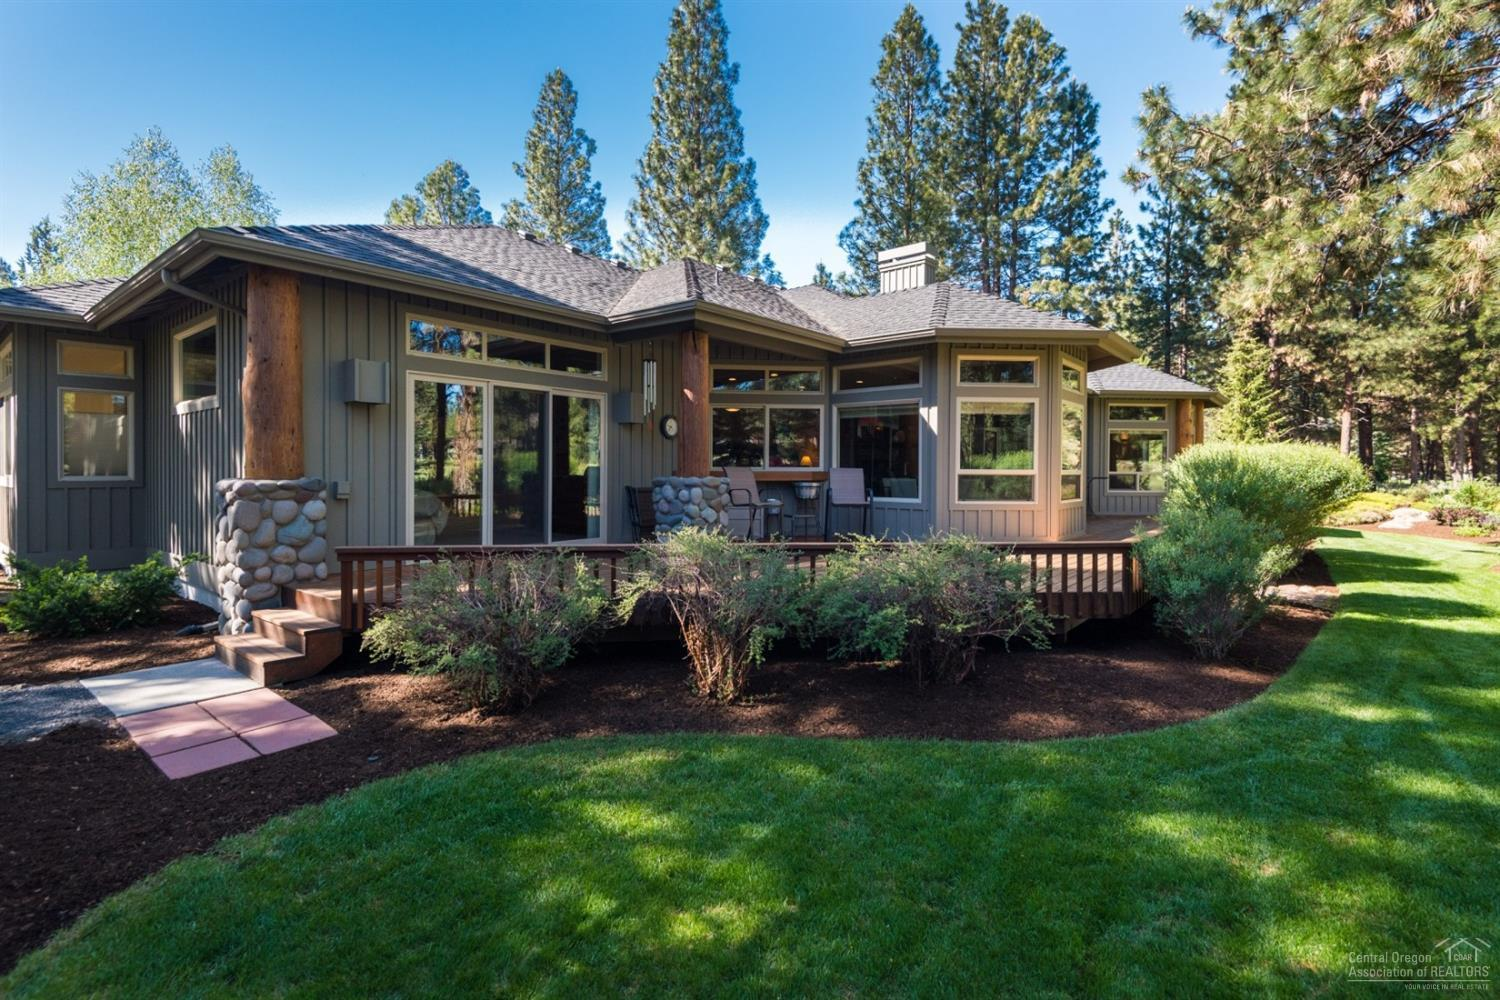 16960 Green Drake Court, Sisters, OR | MLS# 201801878 | Welcome to